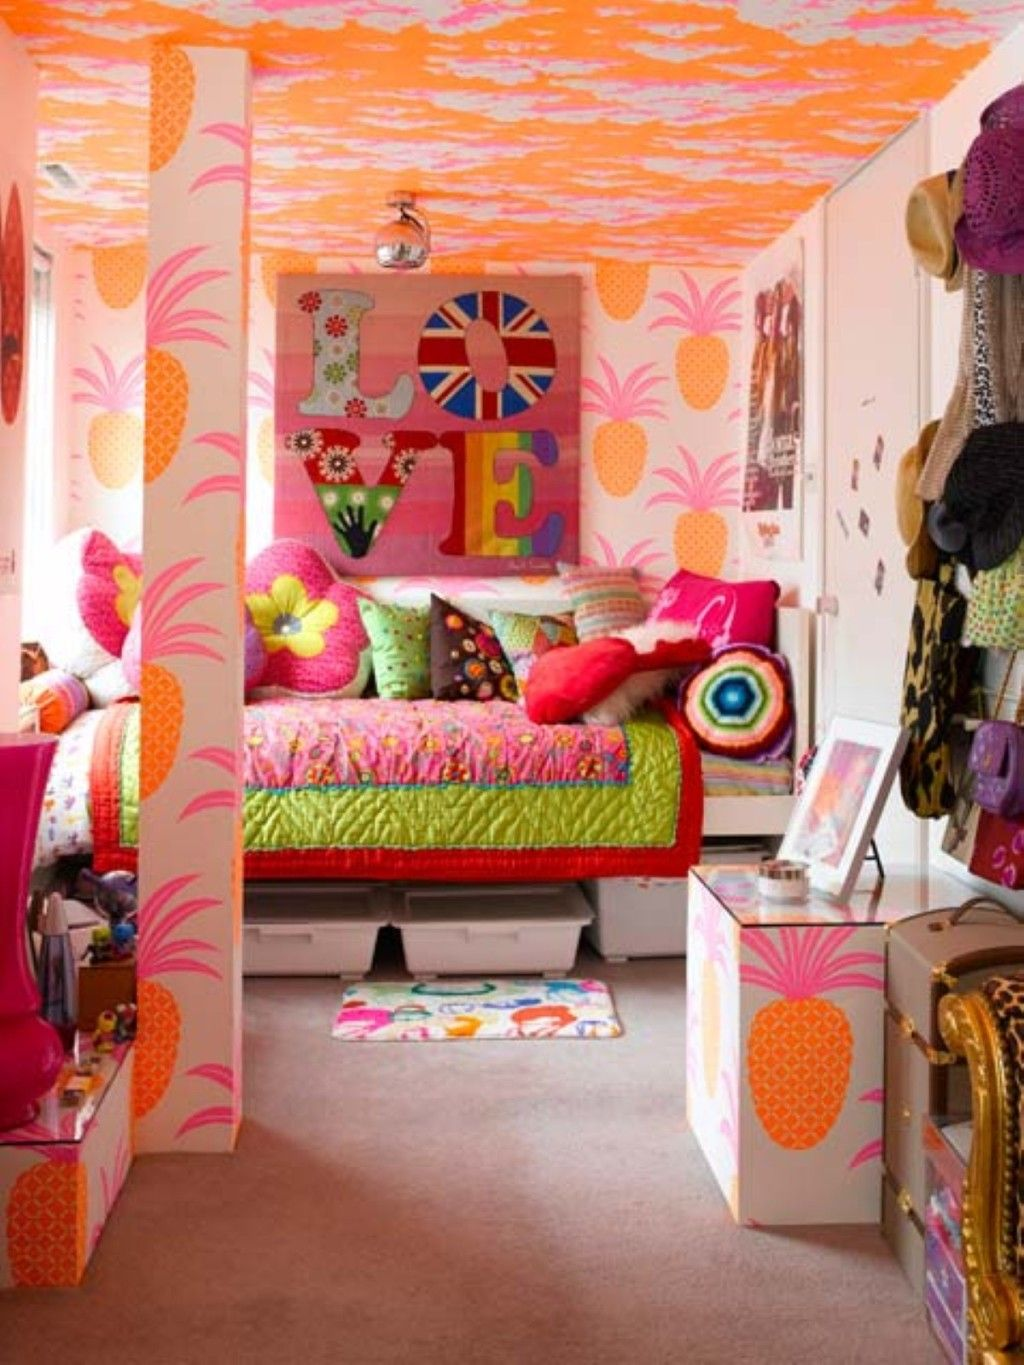 Kids Room Cool Tropical Girl Bedroom In A Mix Of Colors With - Teenage girl bedroom ideas bright colors